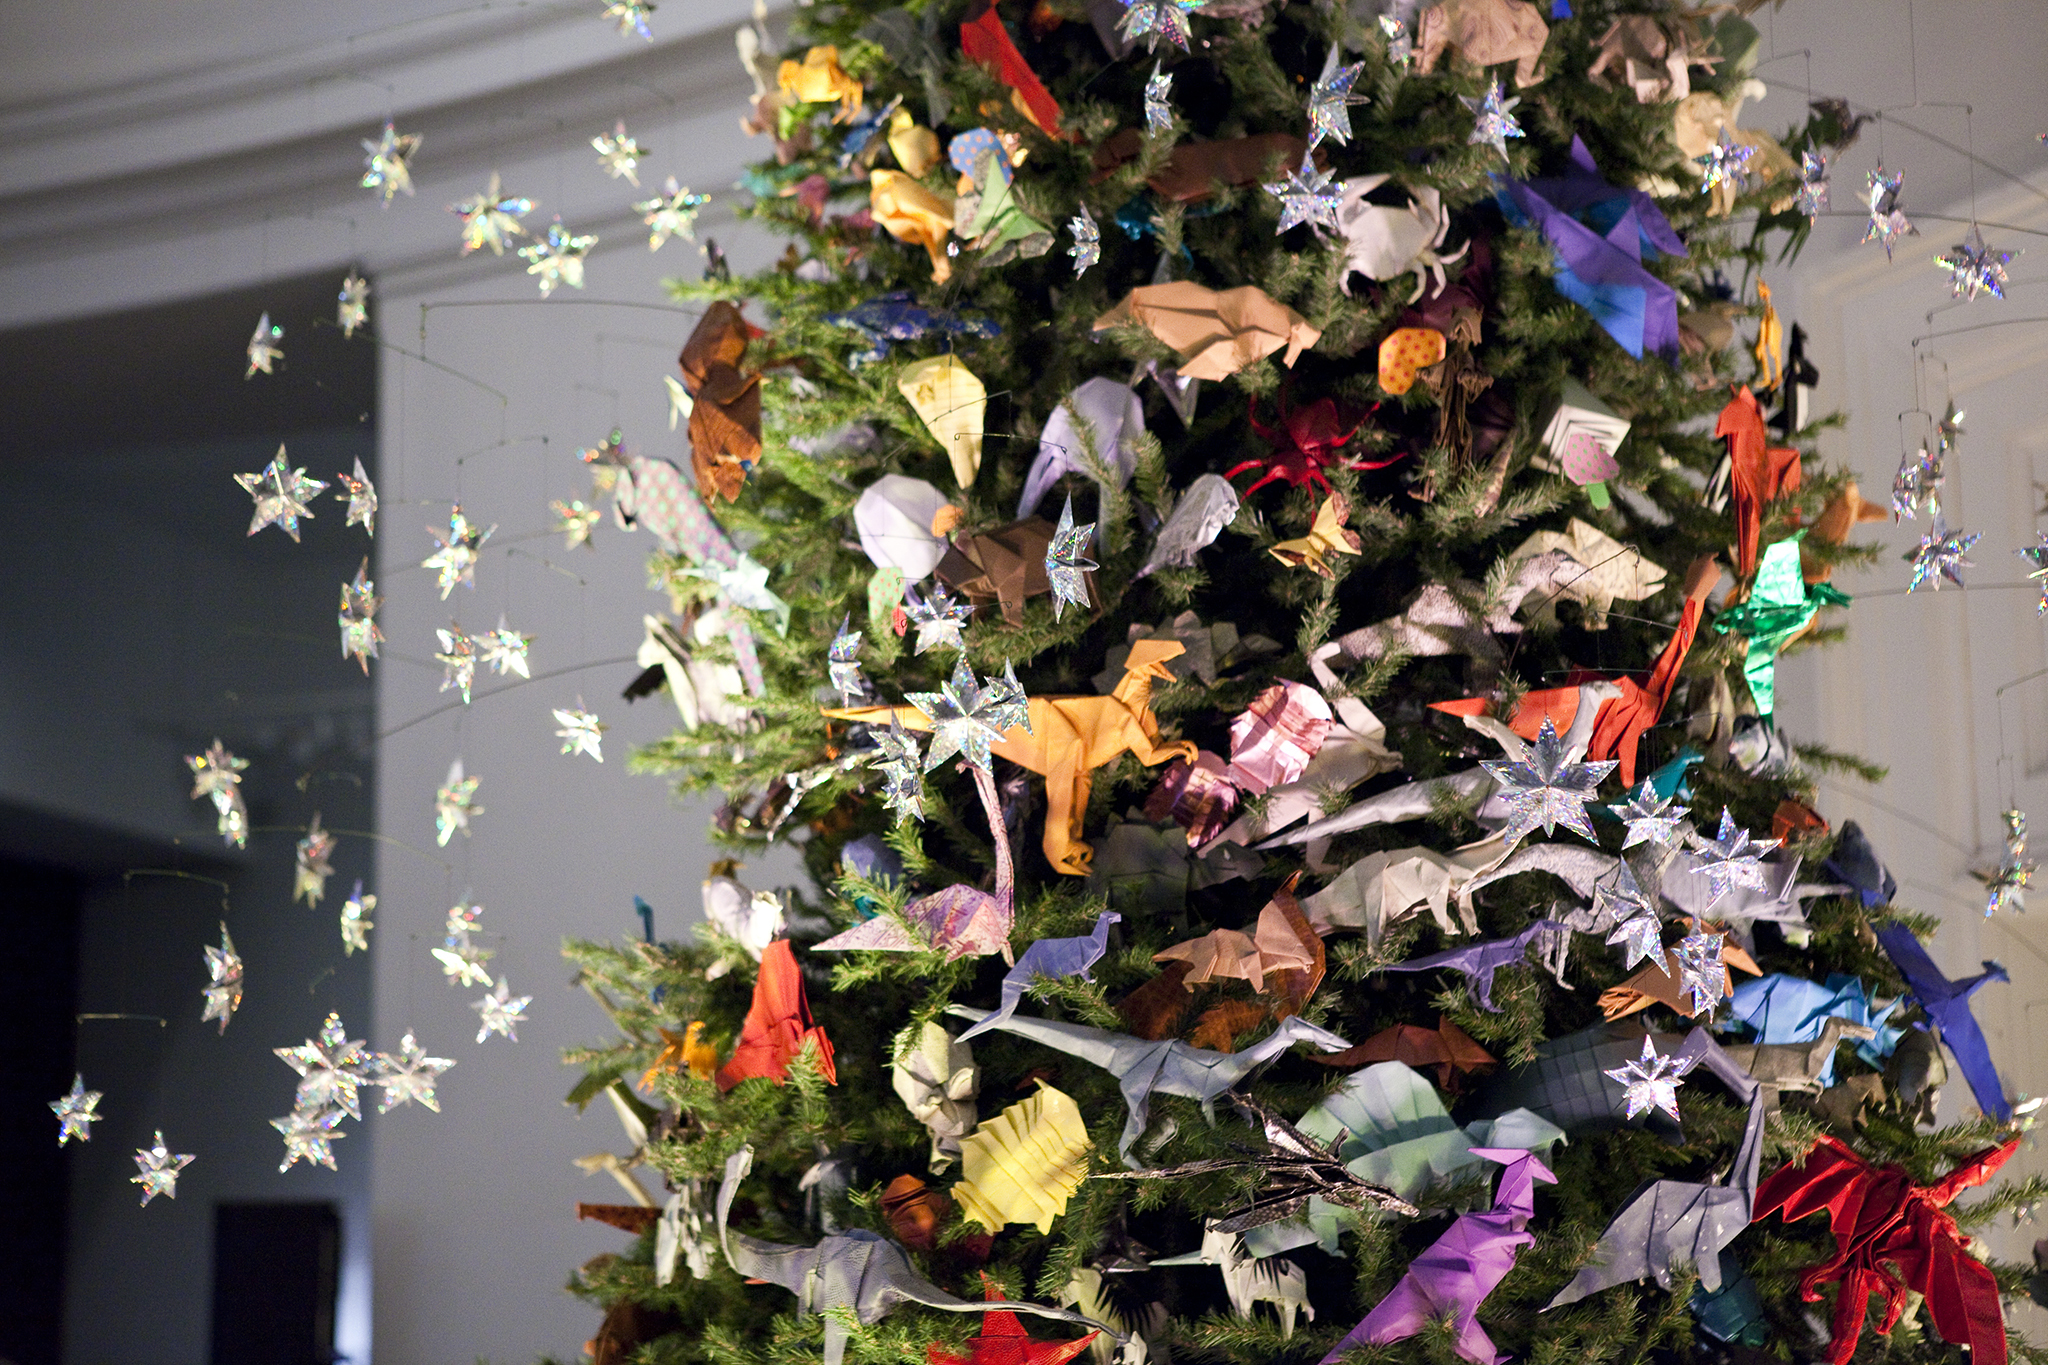 American Museum of Natural History's Holiday Origami Tree